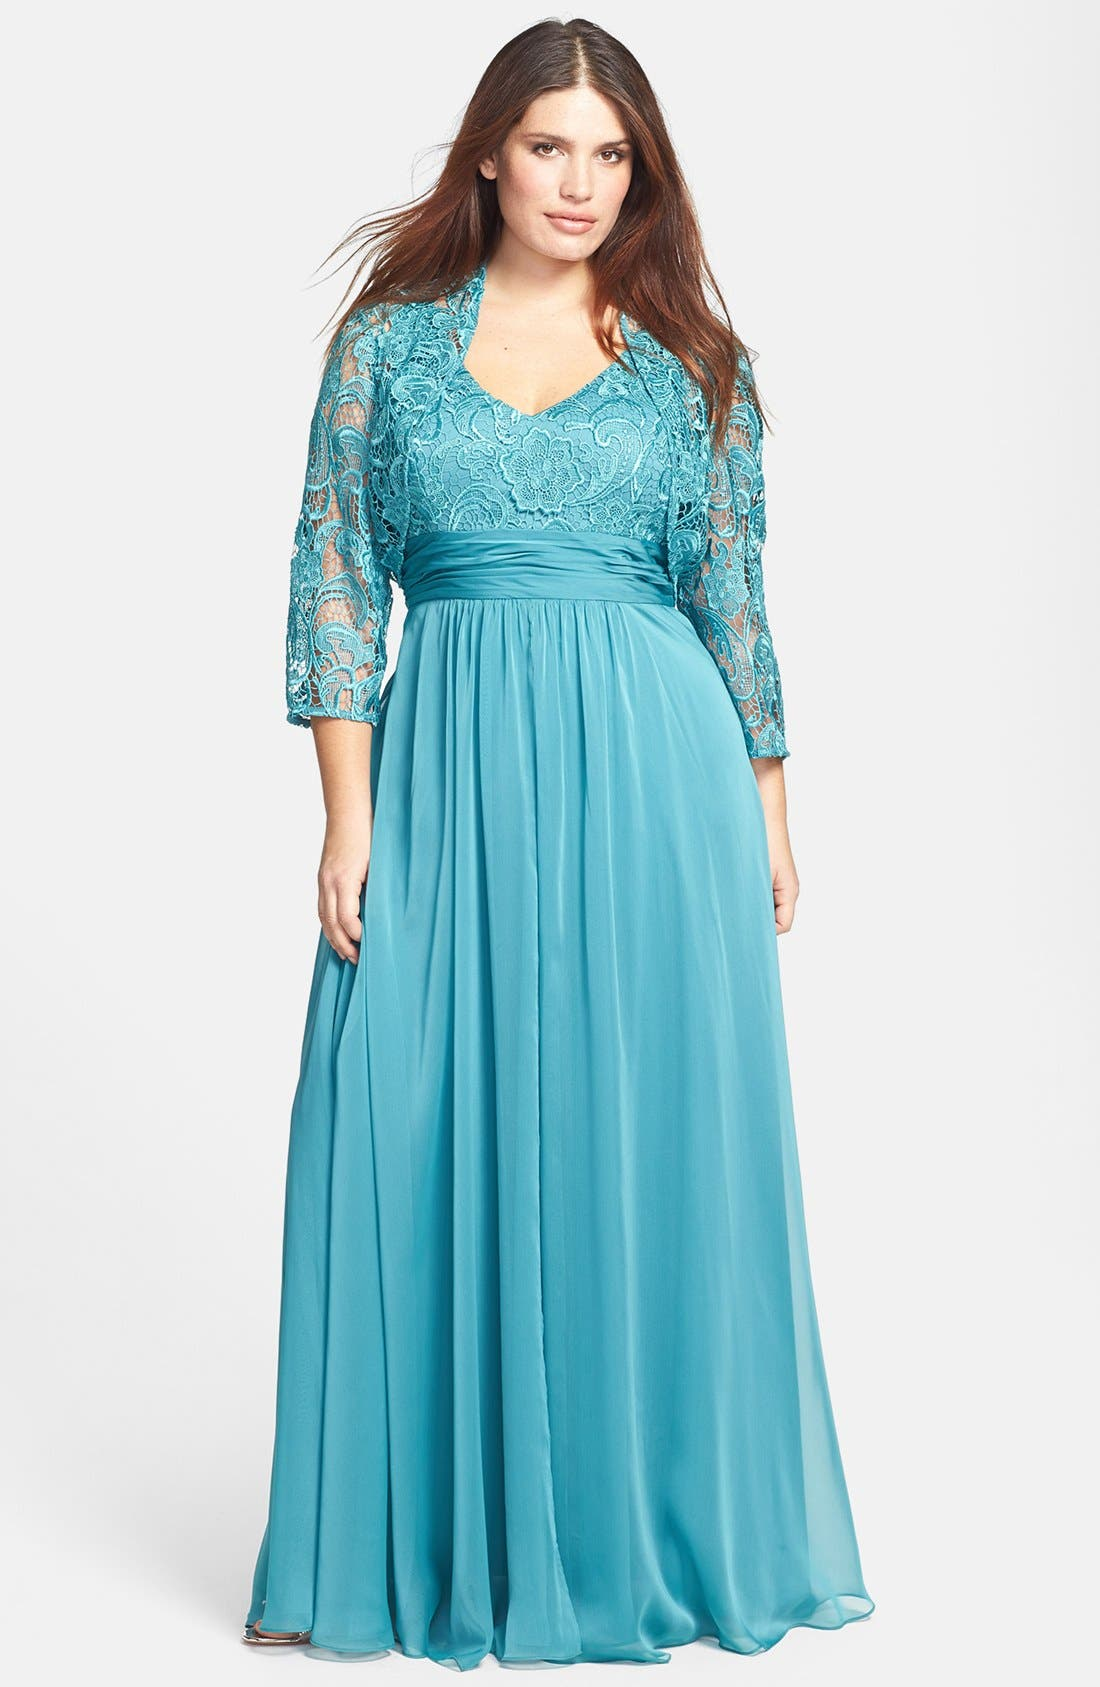 Alternate Image 1 Selected - Adrianna Papell Chiffon & Lace Gown & Jacket (Plus Size)